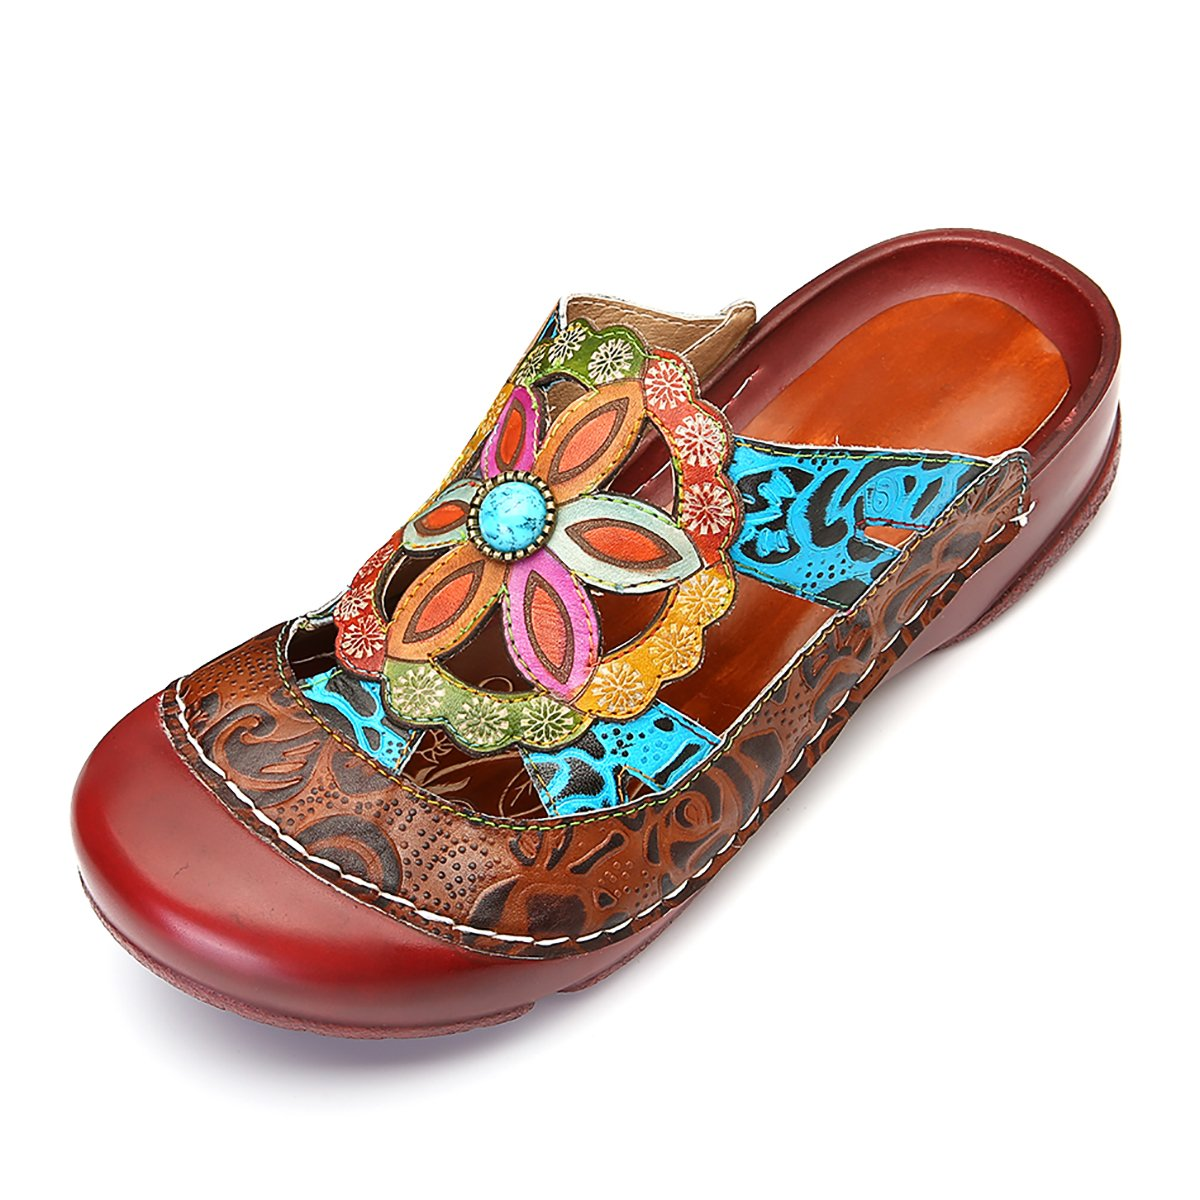 gracosy Women Leather Sandals, Mule Shoes Summer Slip-on Loafers Comfort Outdoor Flat Slipper Clogs Shoes Red Brown 11 B(M) US